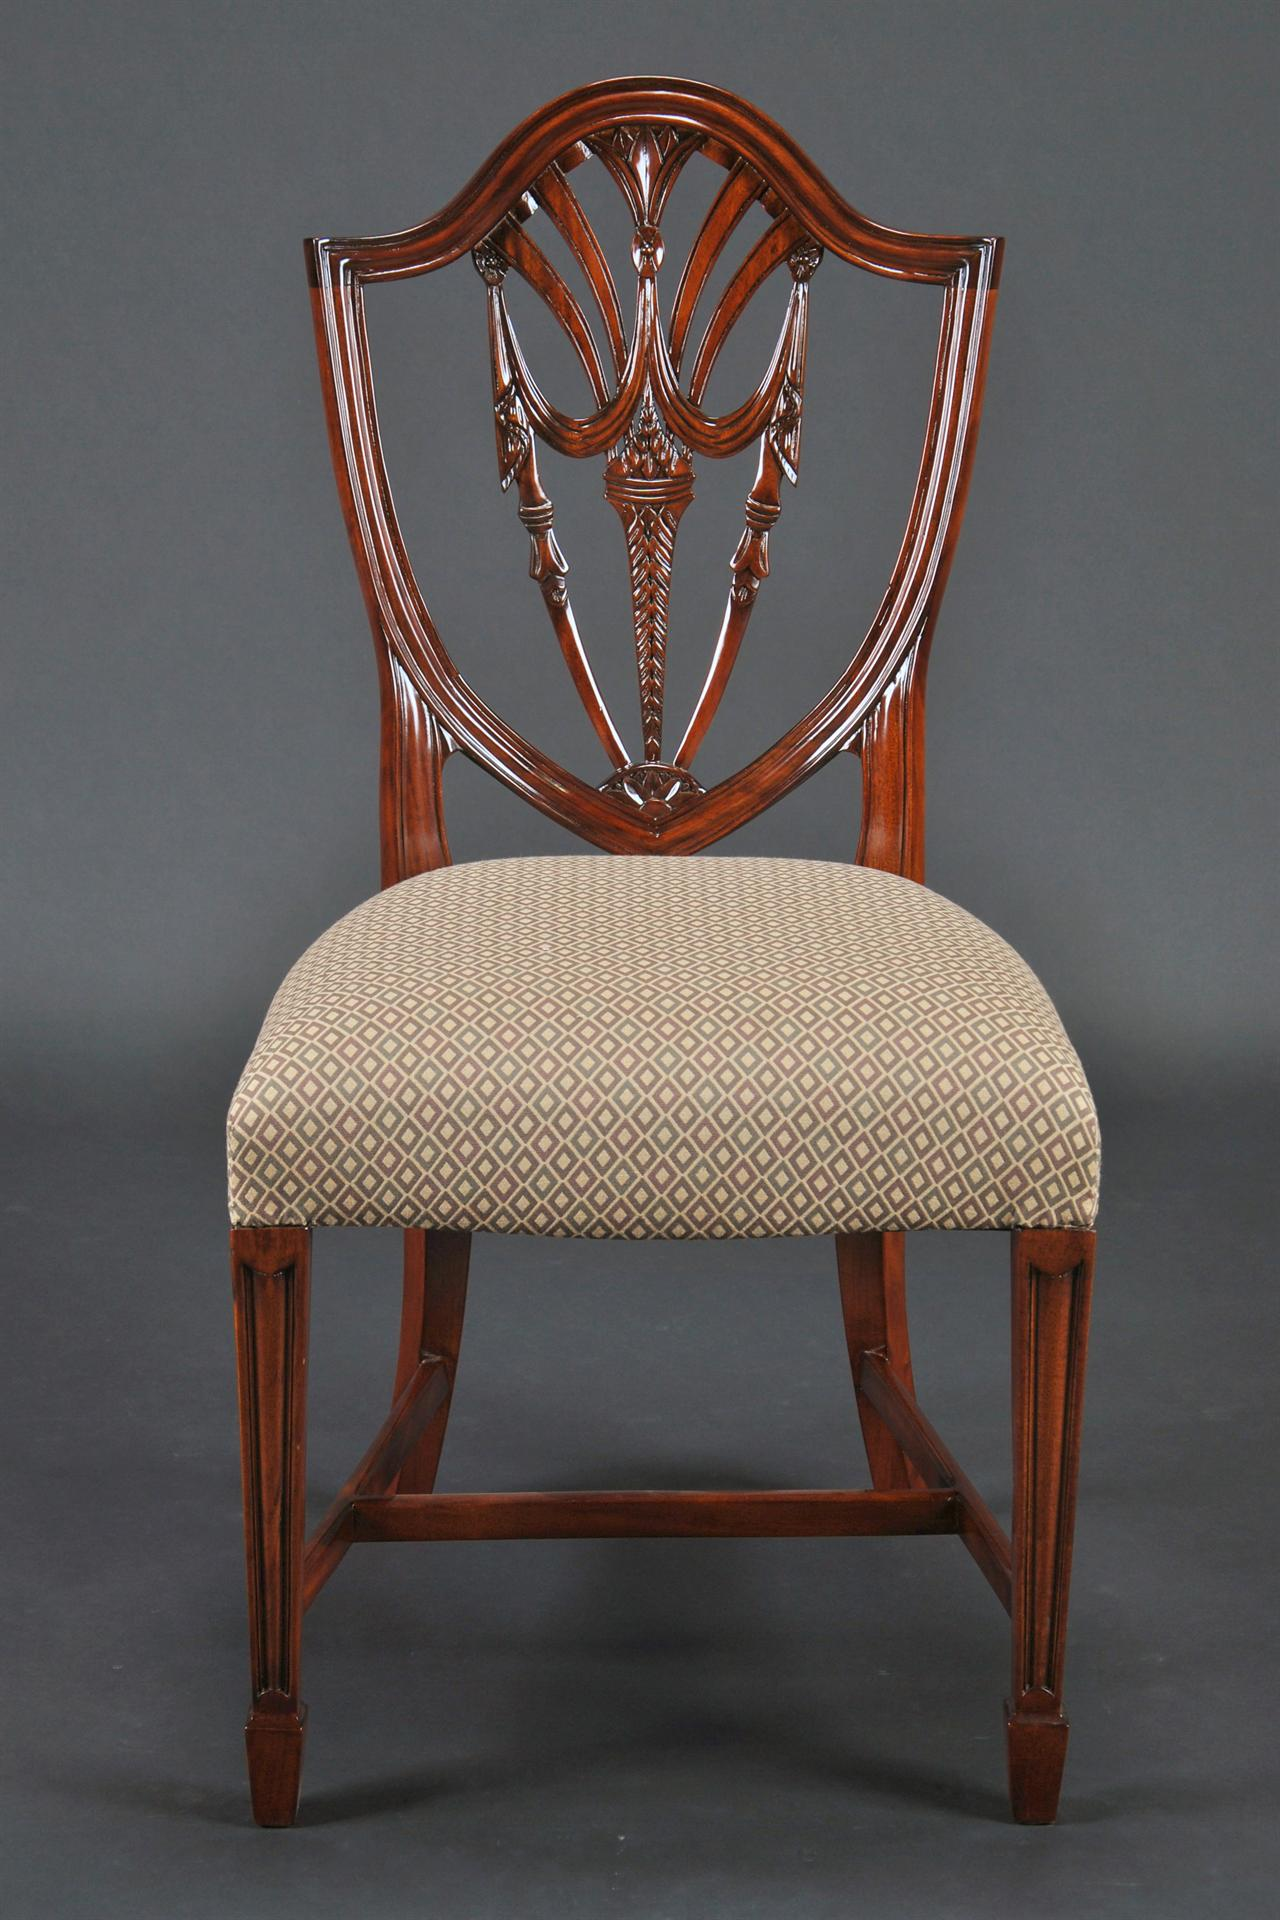 Fabulous Antique Mahogany Dining Room Chairs 1280 x 1920 · 235 kB · jpeg